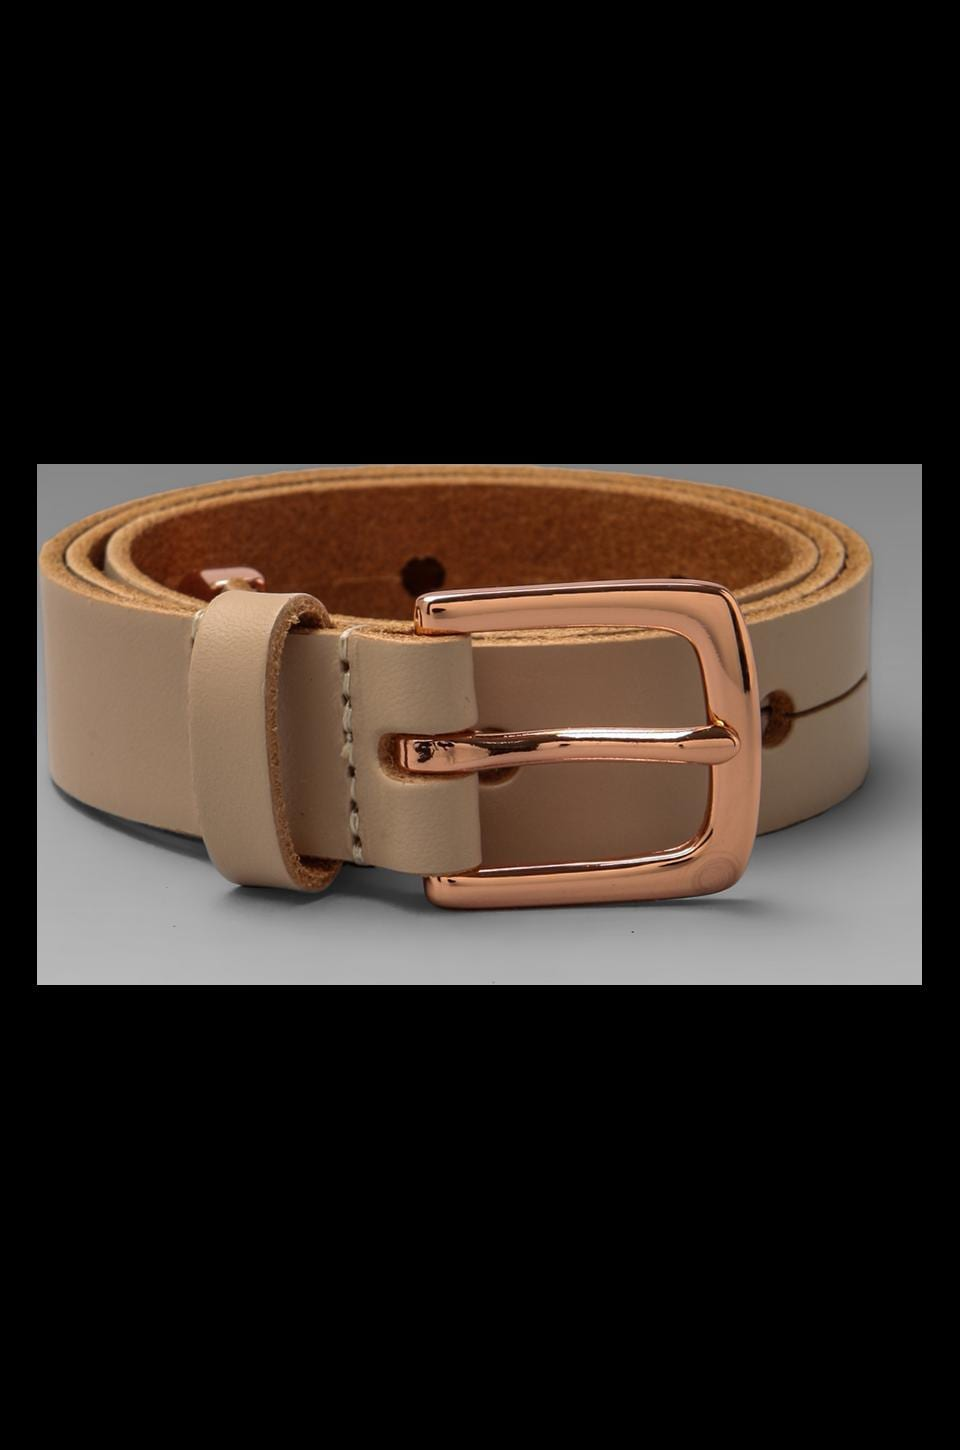 Linea Pelle Avery Waist with Metal Tip Belt in Blush/Rose Gold